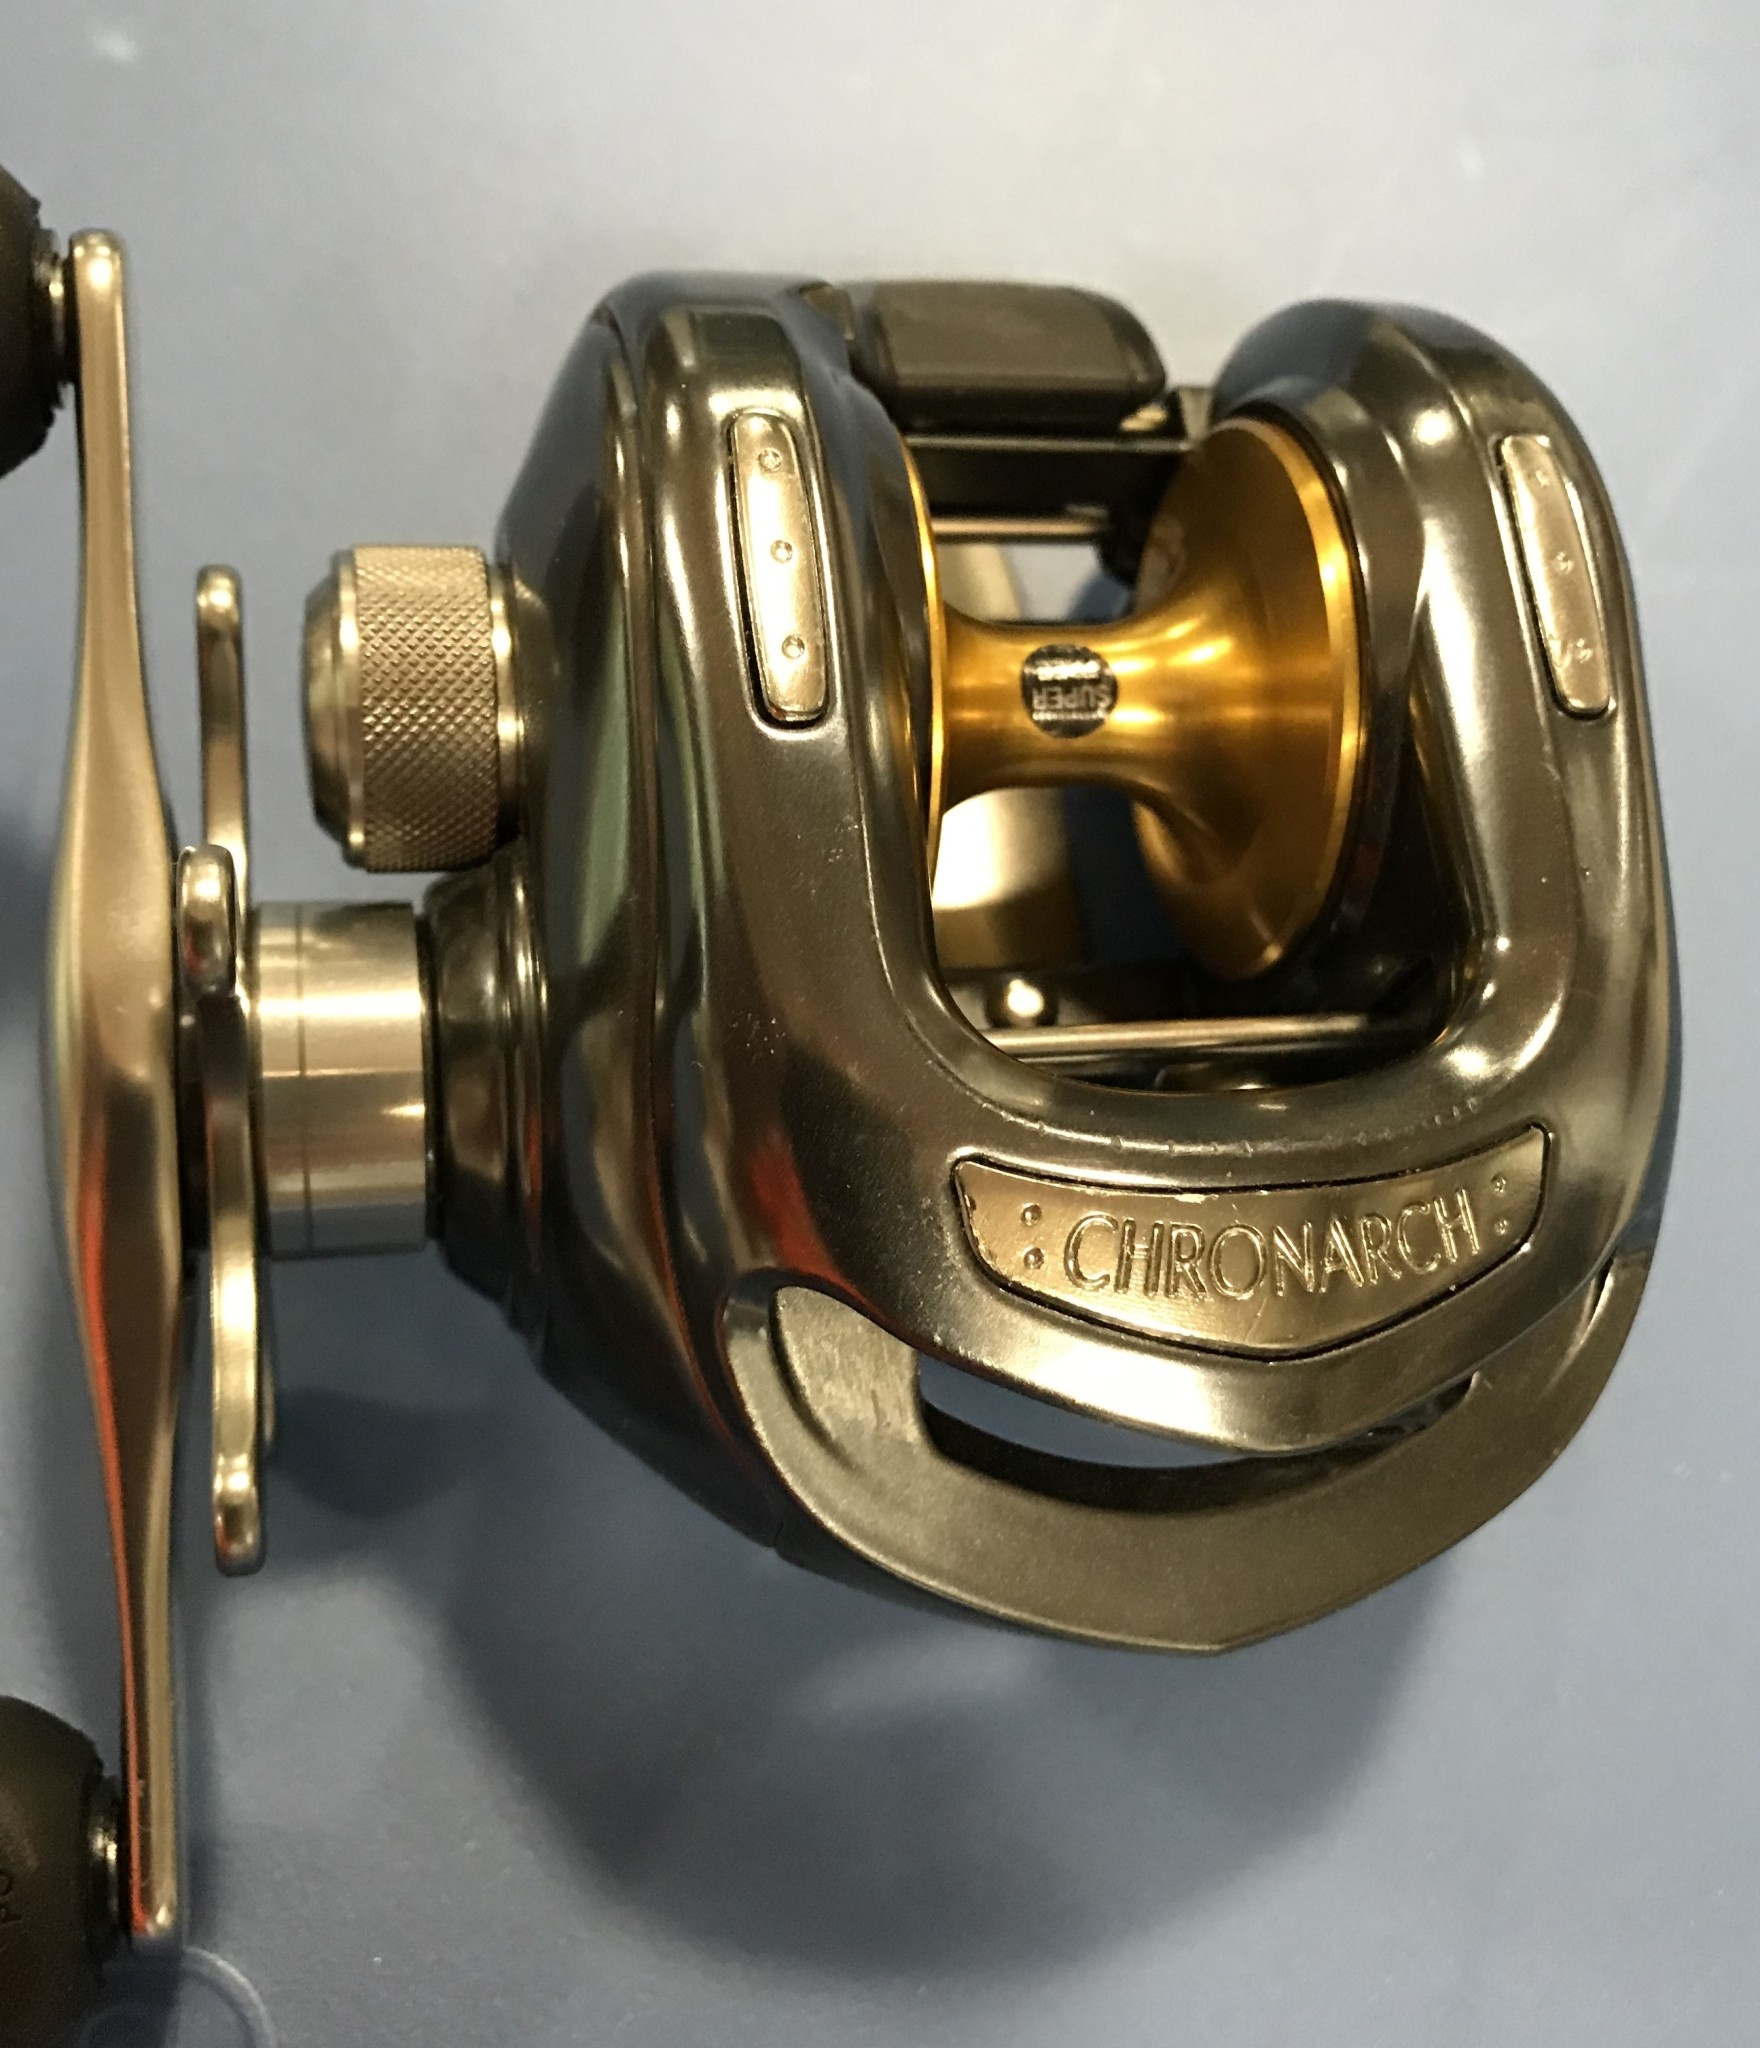 Shimano Vintage Shimano Chronarch CH100BSV near MINT condition with upgrades